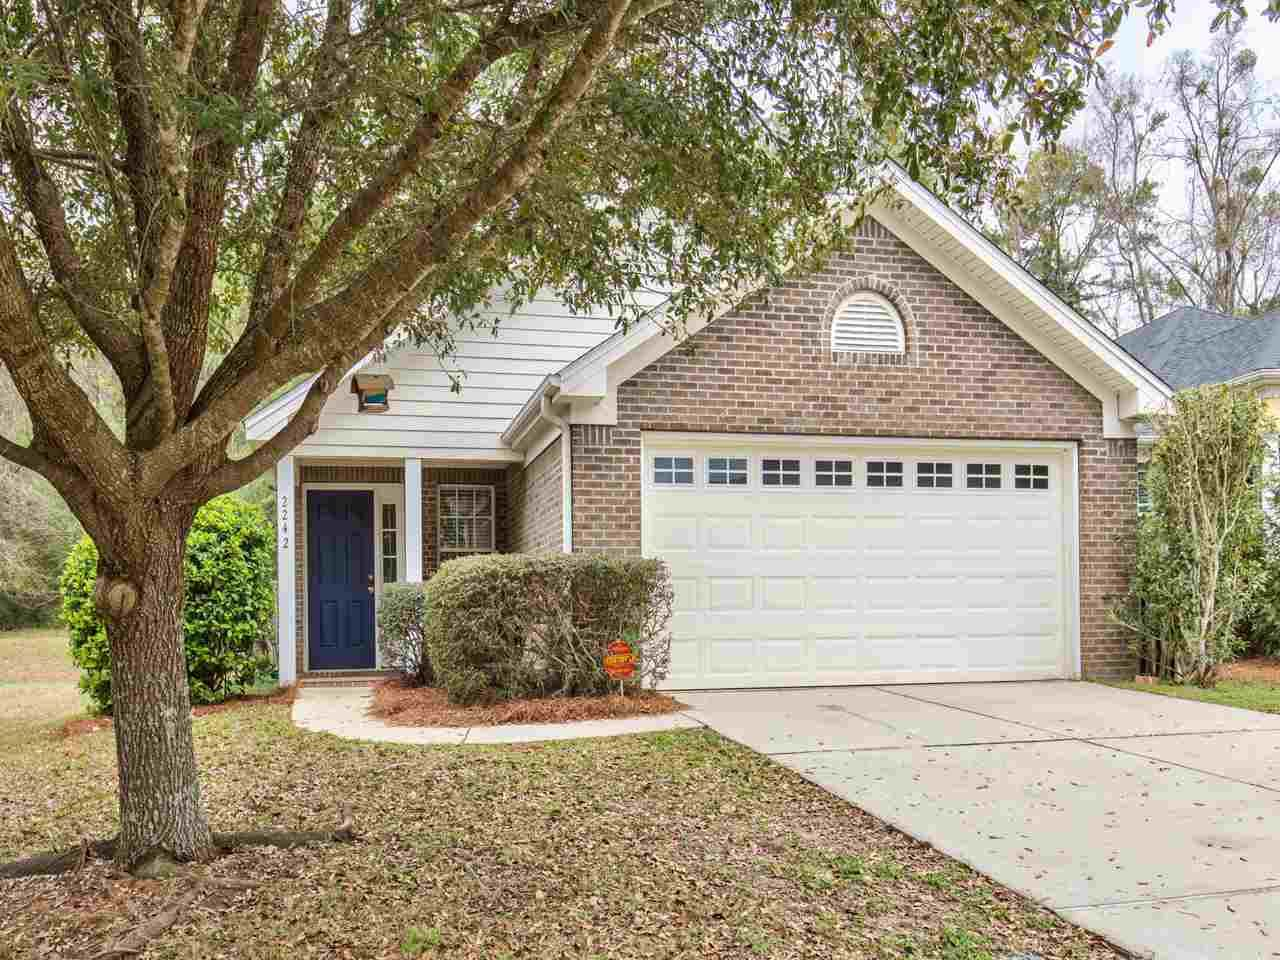 2242 HEATHROW Drive, Tallahassee, FL 32312 - MLS#: 330778